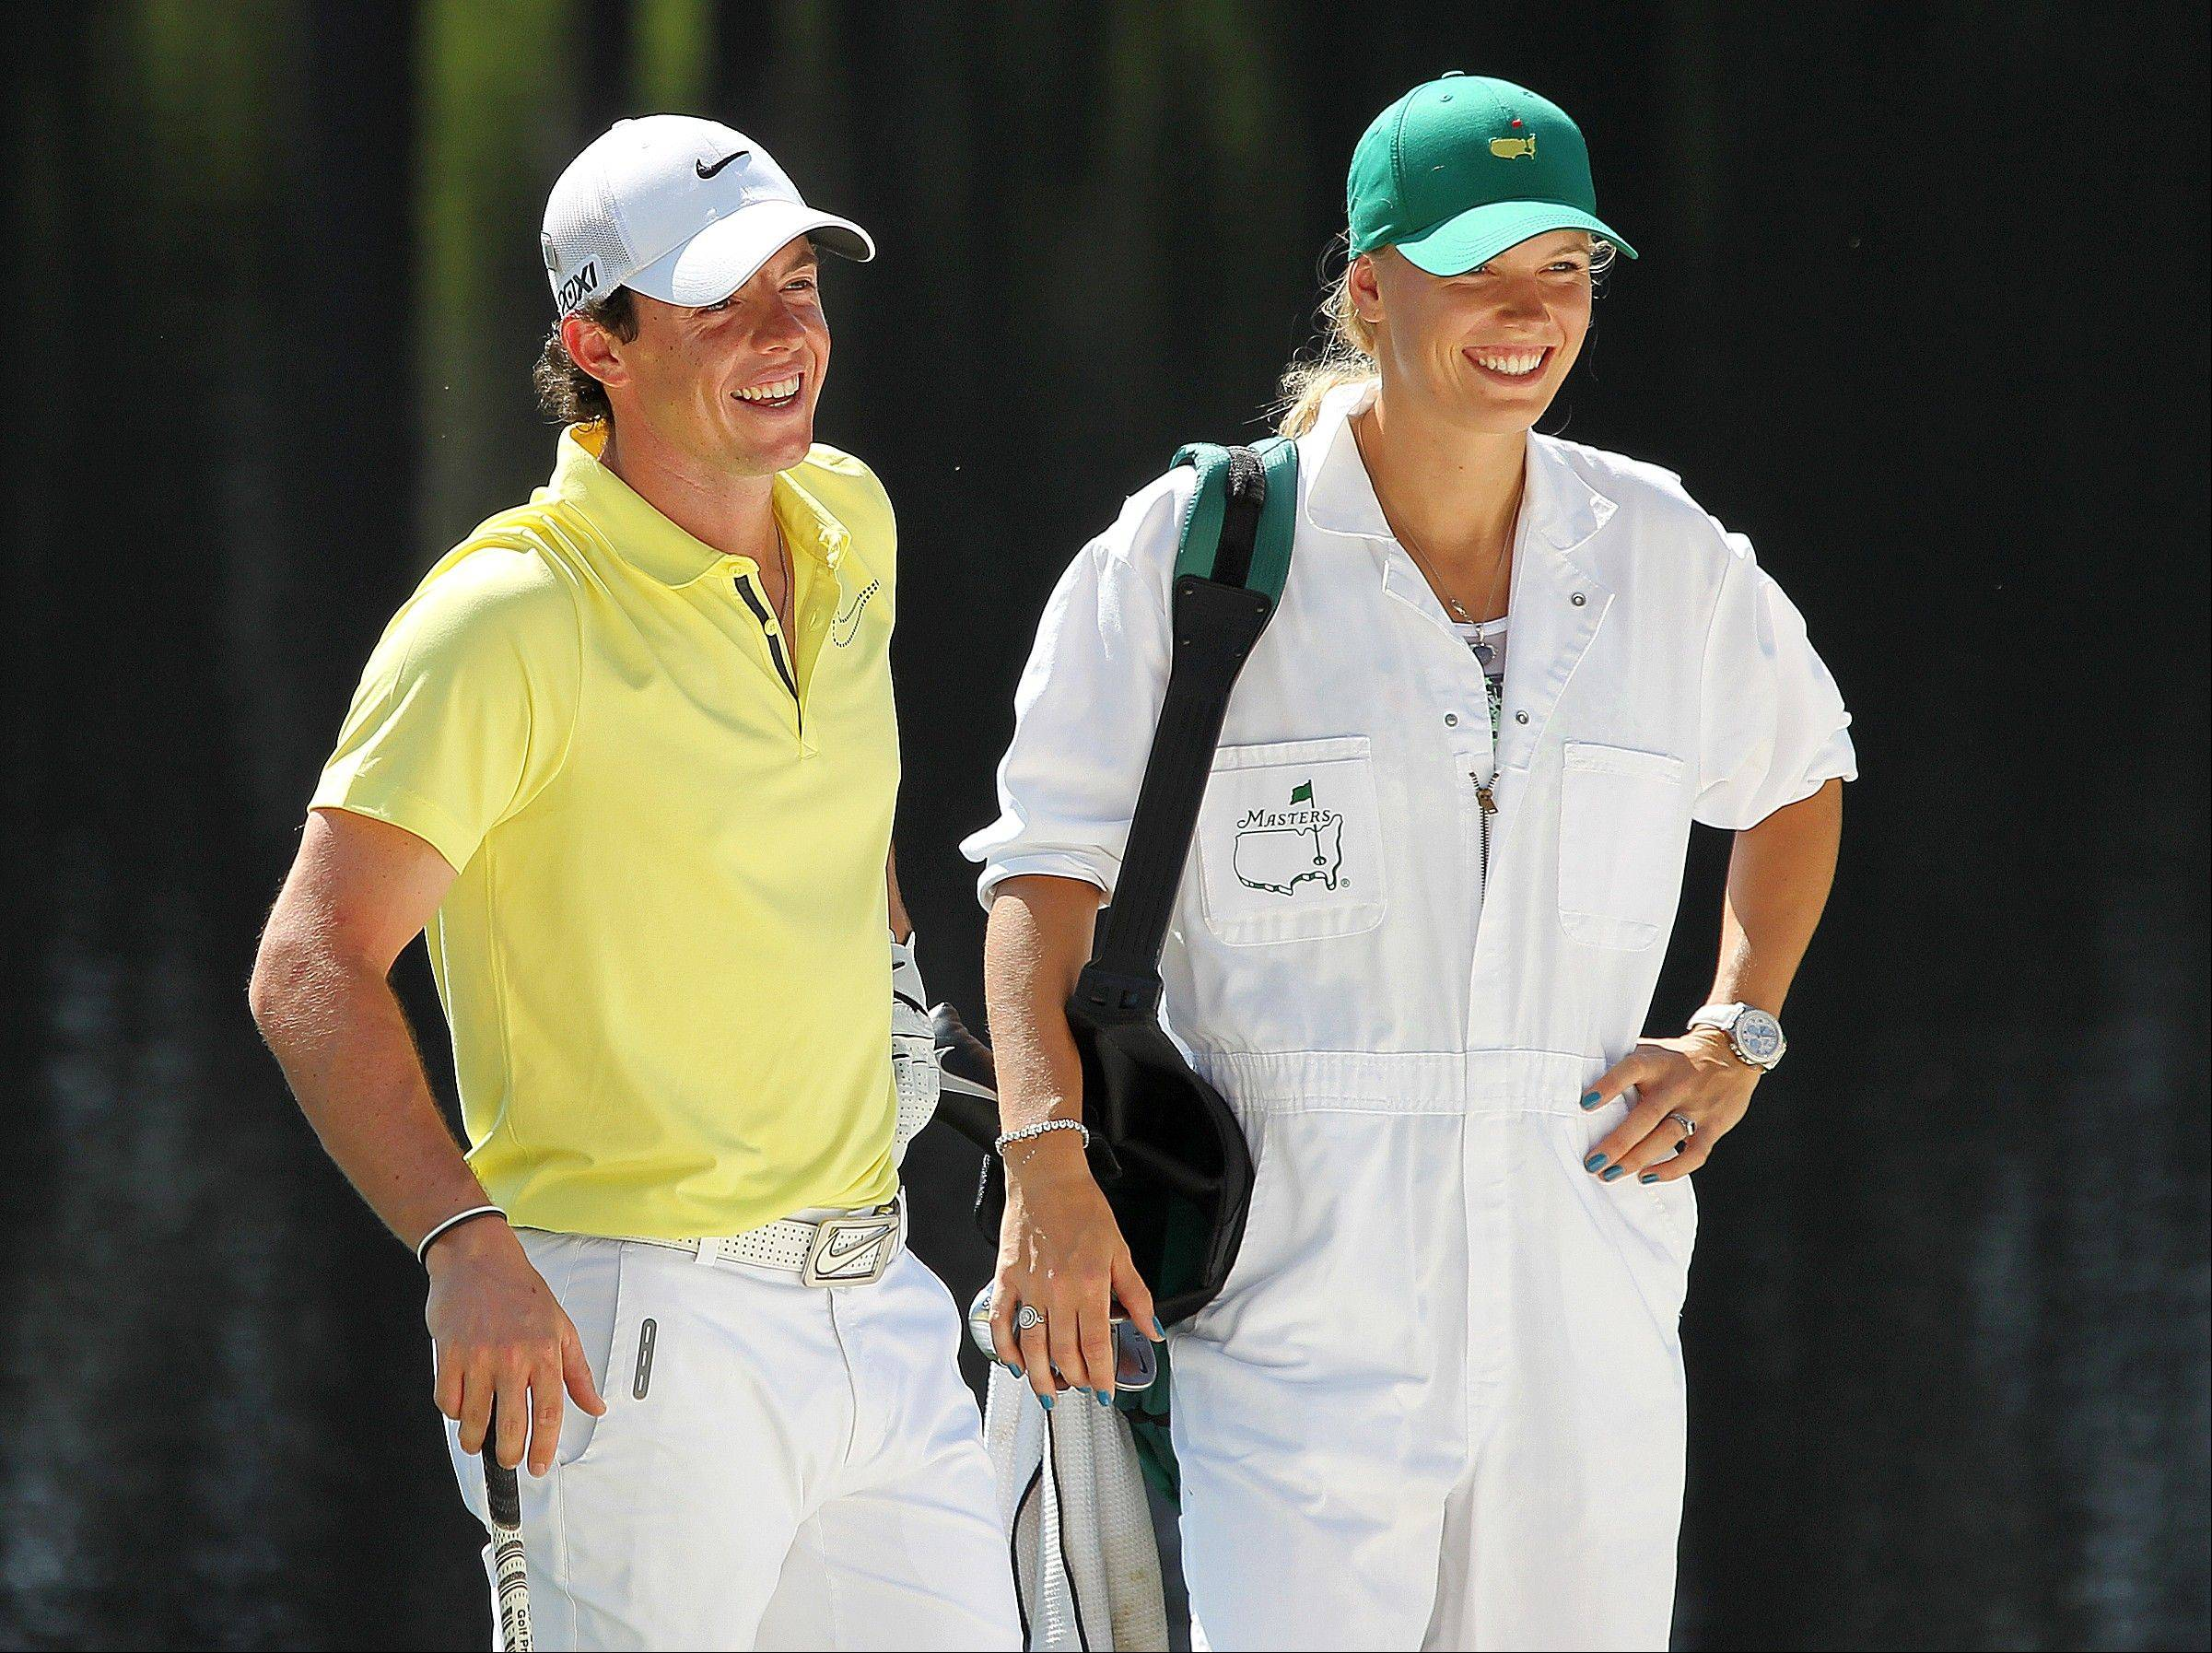 Rory McIlroy and his caddie, tennis player Caroline Wozniacki, share a laugh on the fourth hole during the par-3 competition at the Masters golf tournament in April. The couple announced their engagement on Twitter Tuesday.